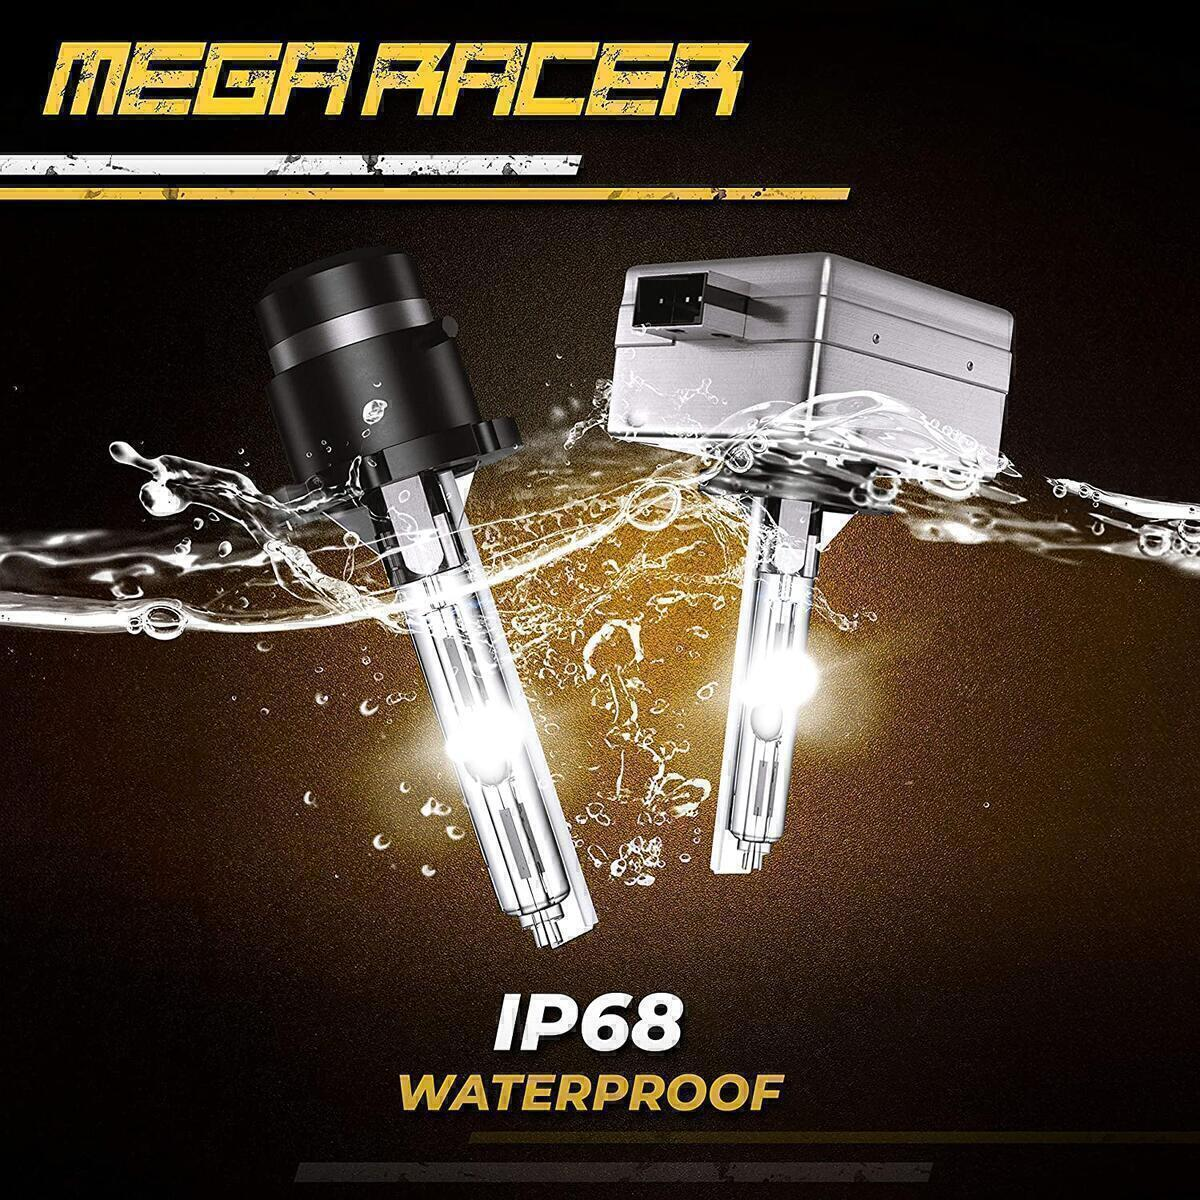 Mega Racer D4S HID Bulb 8000K Ice Blue D4S/D4R Xenon HID Bulbs for Low Beam High Beam Replacement Bulbs, 35W 8000 Lumens Metal Stents Base 12V IP68 Waterproof, Pack of 2